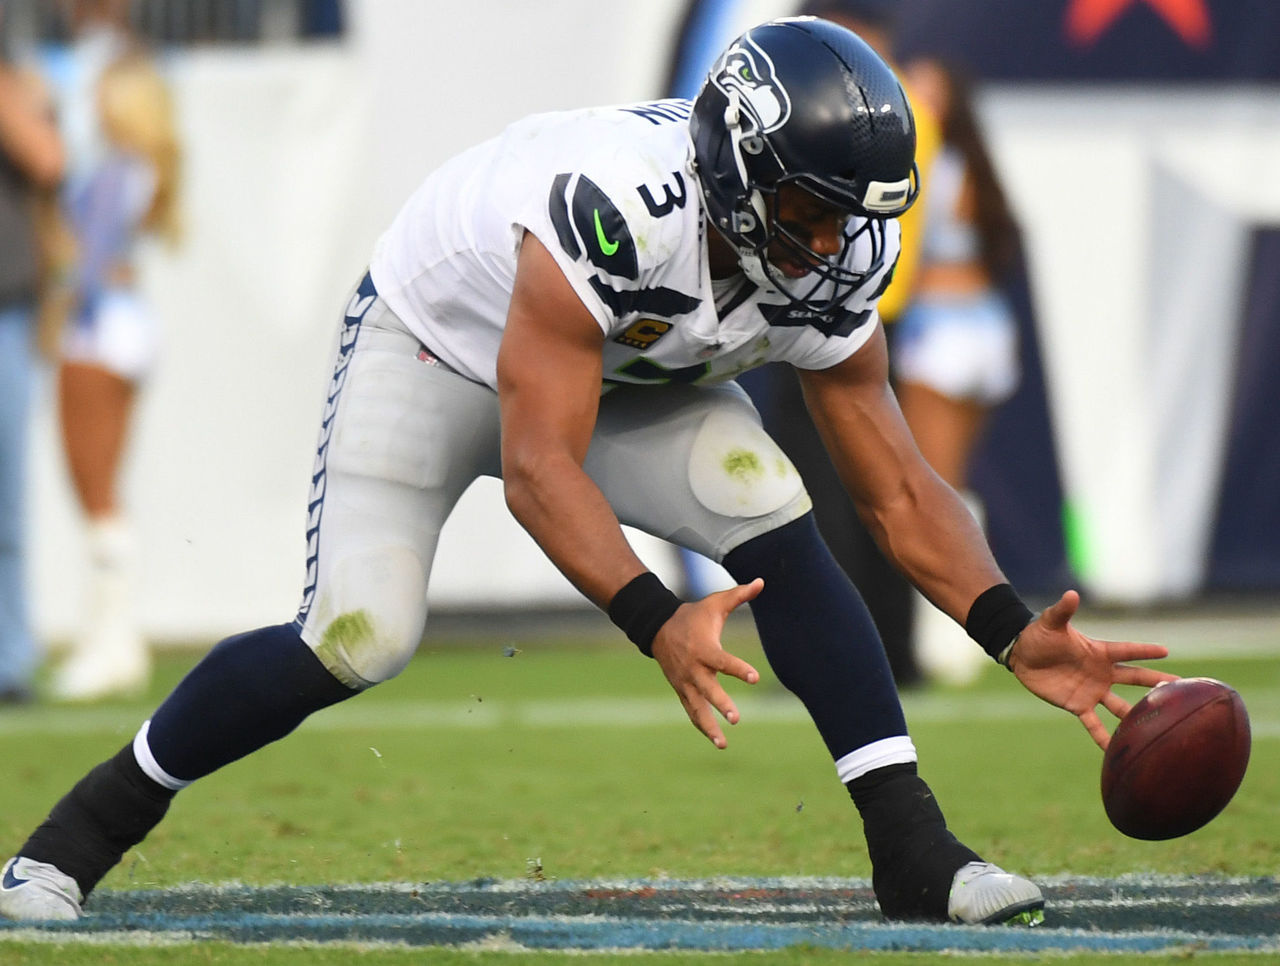 Cropped_2017-09-24t235217z_1631044570_nocid_rtrmadp_3_nfl-seattle-seahawks-at-tennessee-titans